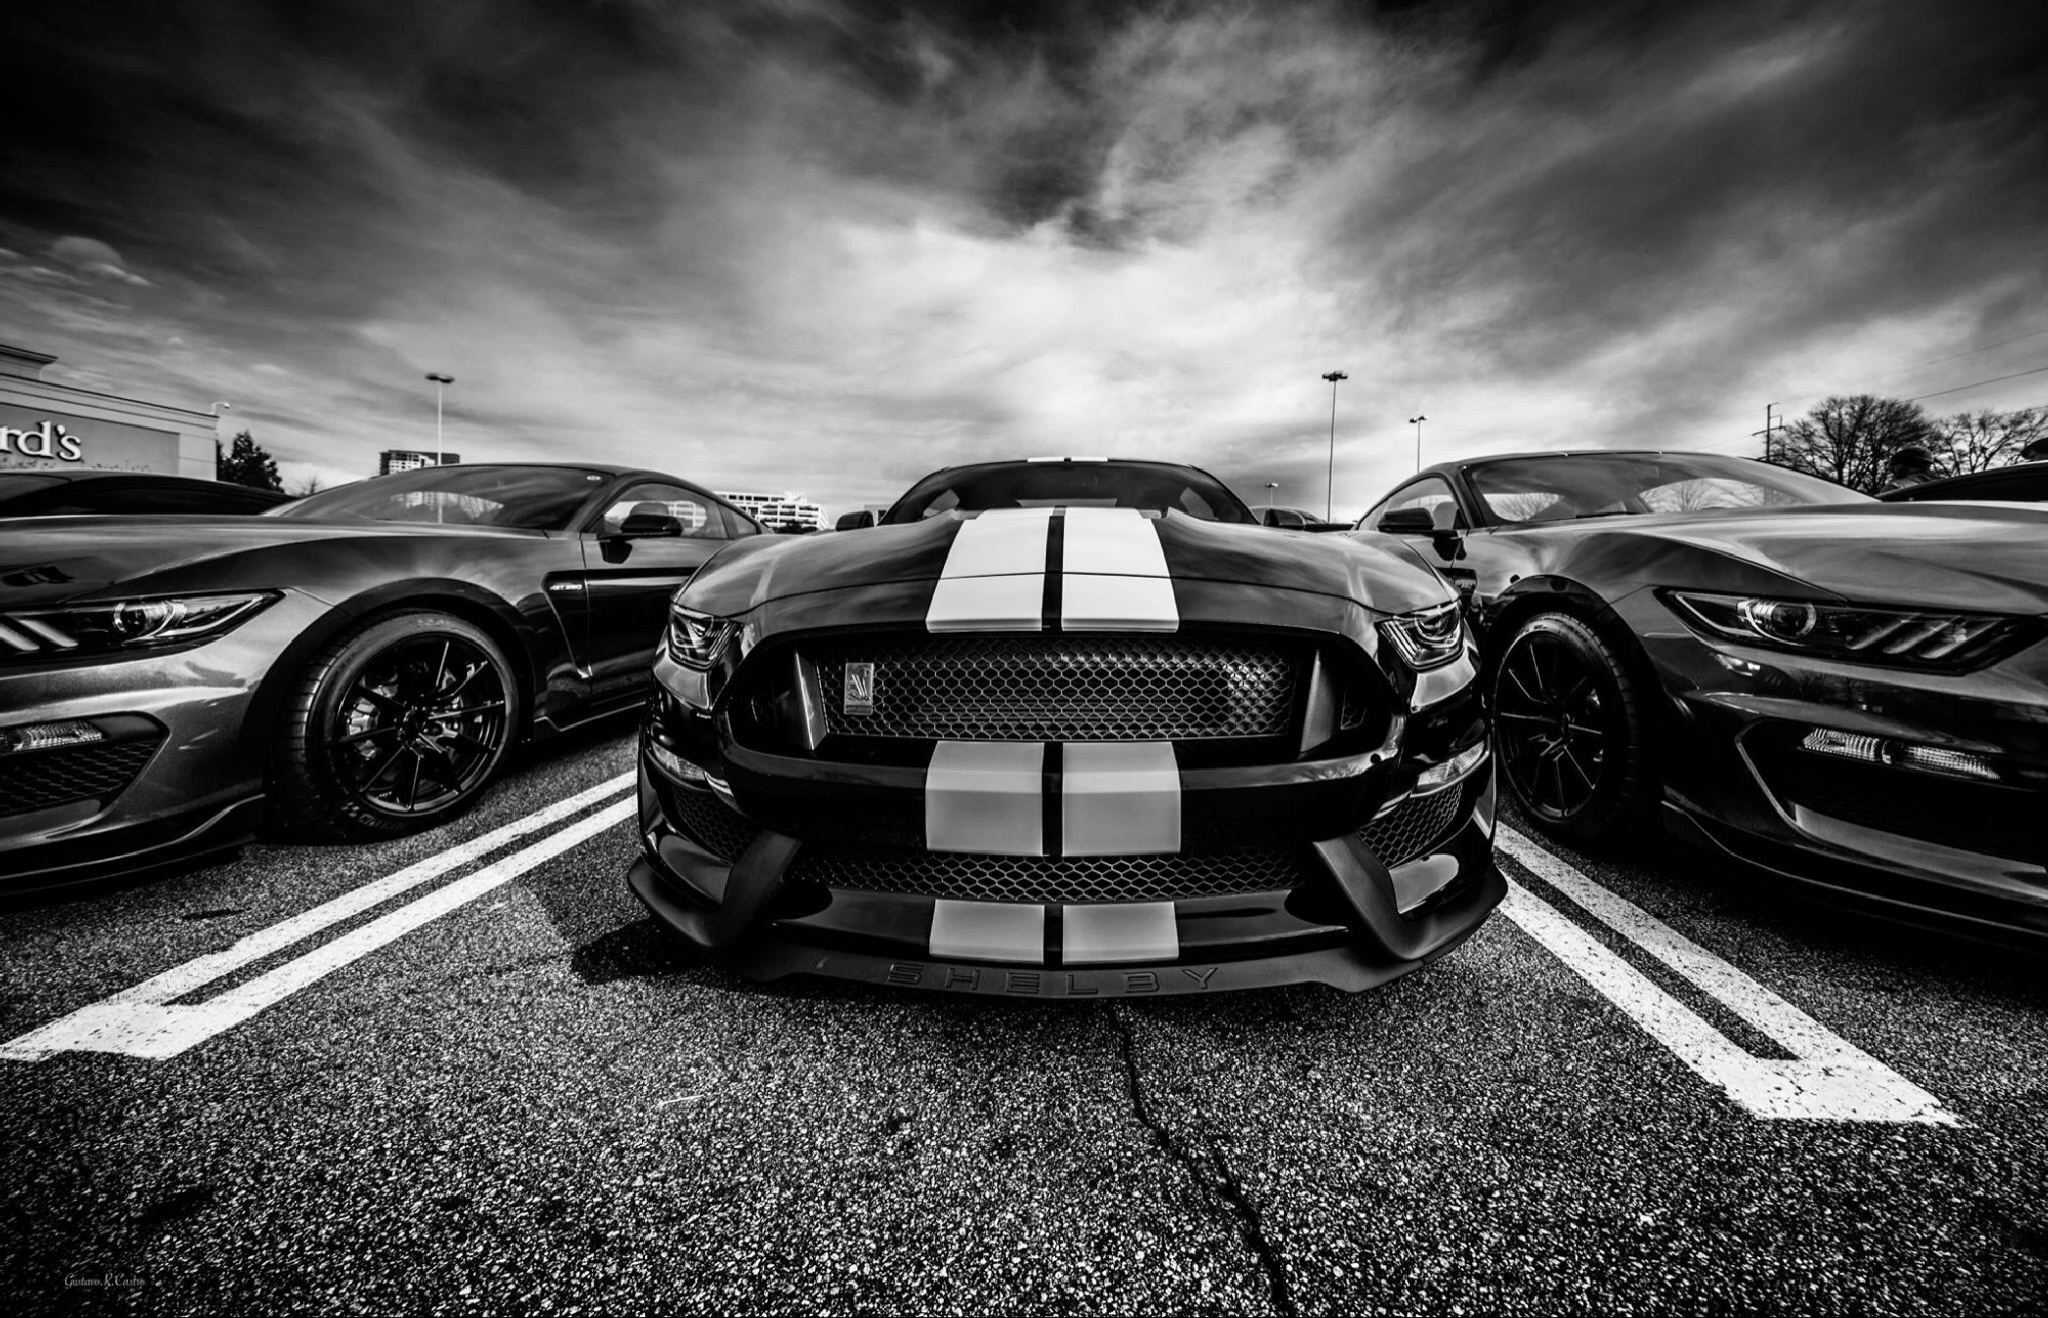 Mustang gt 350 by gustavorene.castro